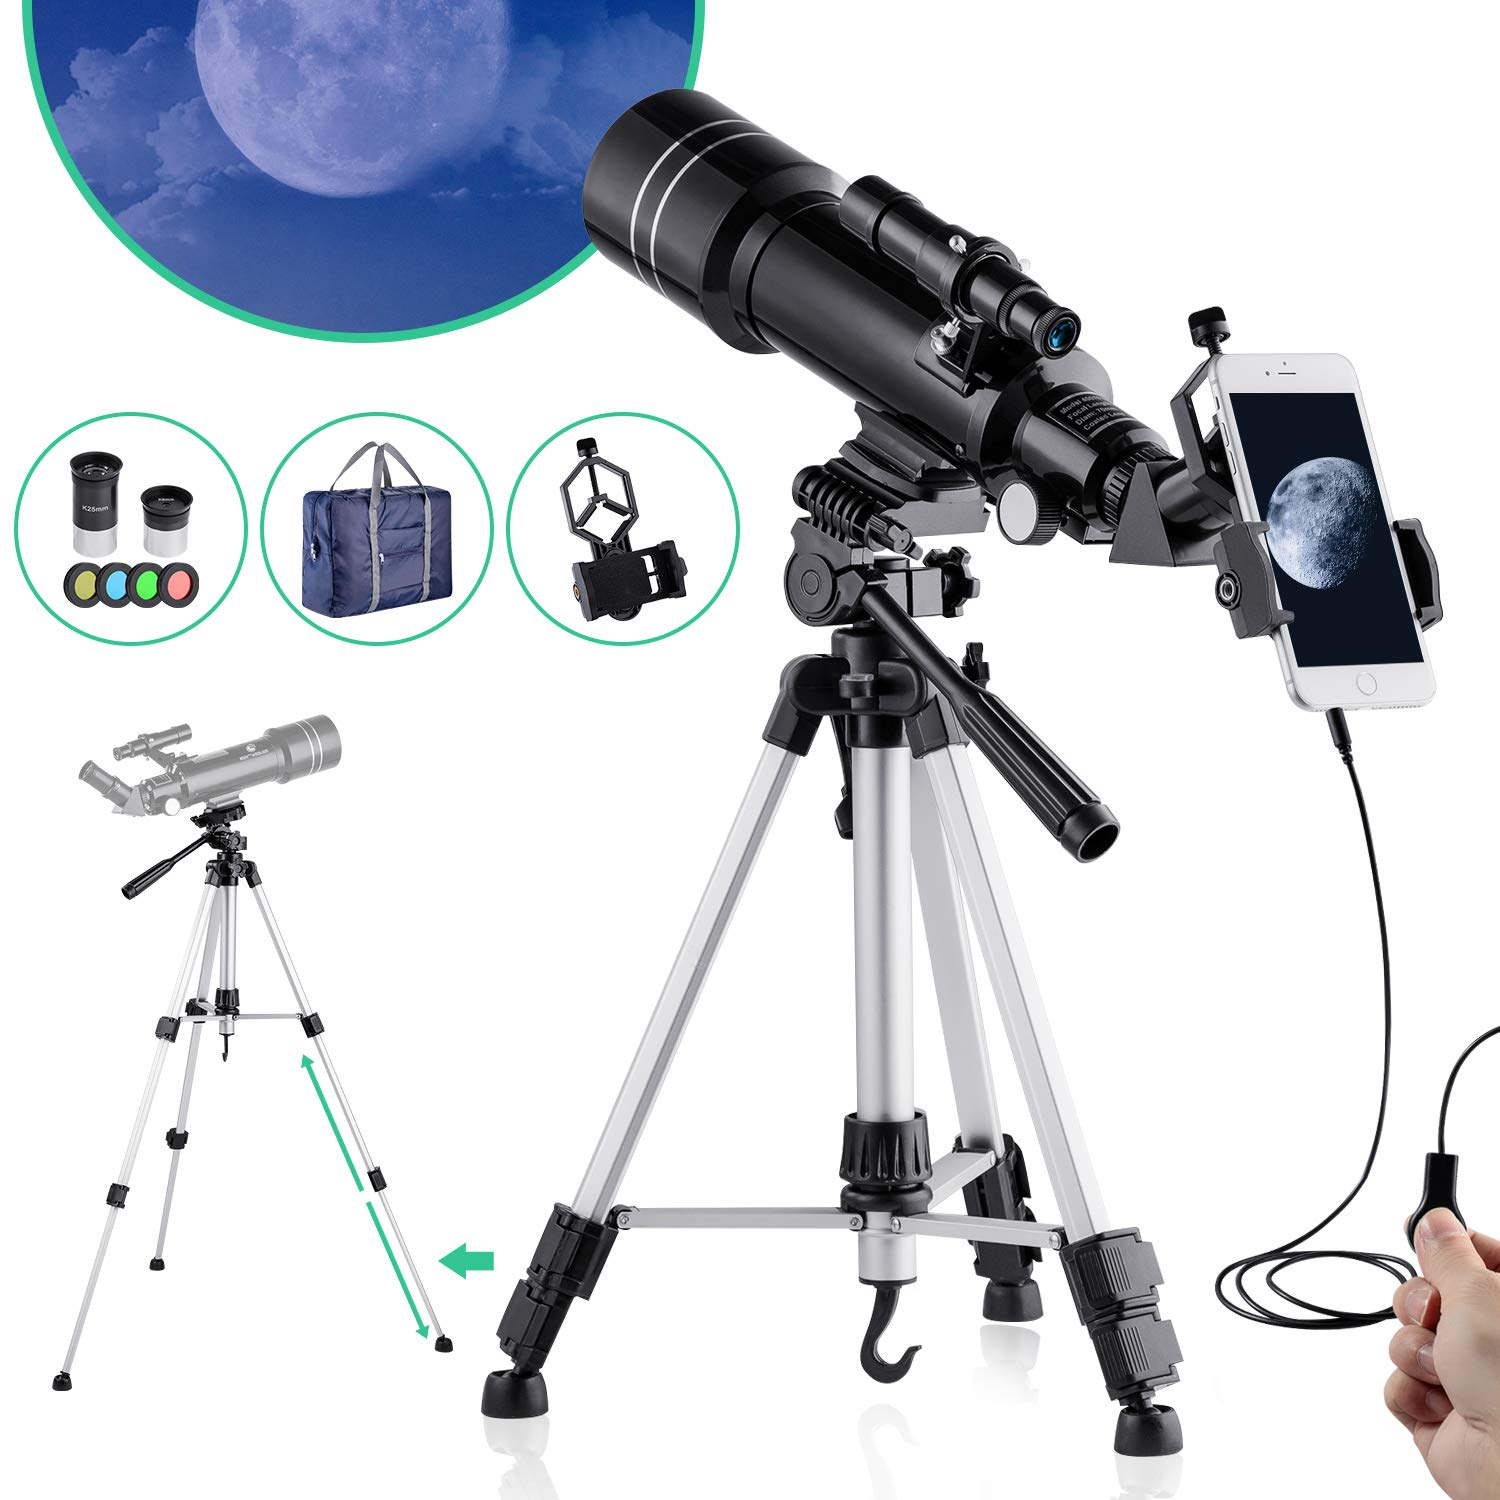 BNISE Telescope for Kids Adults Astronomy Beginners Refractor Telescope 70mm Objective Lens, 400mm Focal Length, with Adjustable Tripod Smartphone Adapter Finder Scope Moon Filter and Carry Bag by BNISE